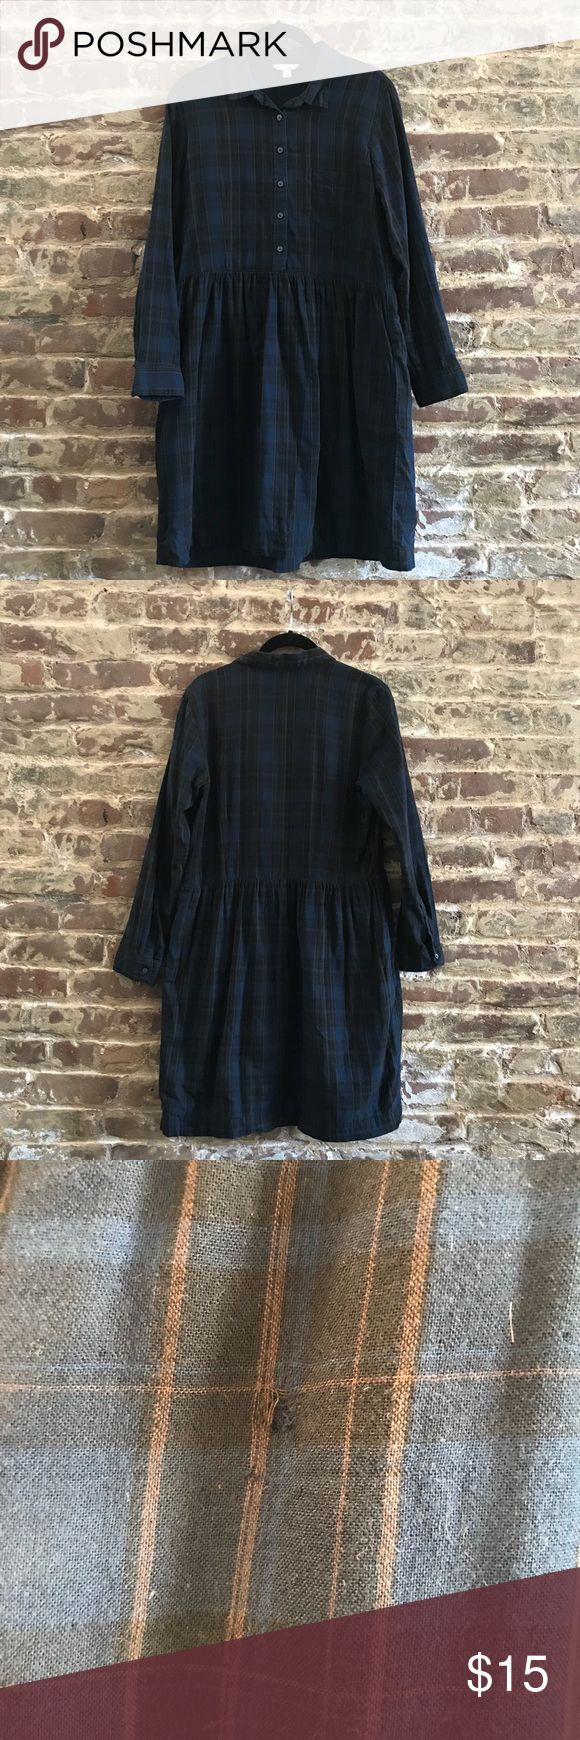 Gap Long Sleeve Plaid Dress Lightly worn dress, deep navy, black and brown plaid, long sleeve, button up collar and top detail, slightly flared skirt, fall right above the knee, has a slight worn spot on the back of the skirt (pictured) that is not noticeable unless up close GAP Dresses Midi